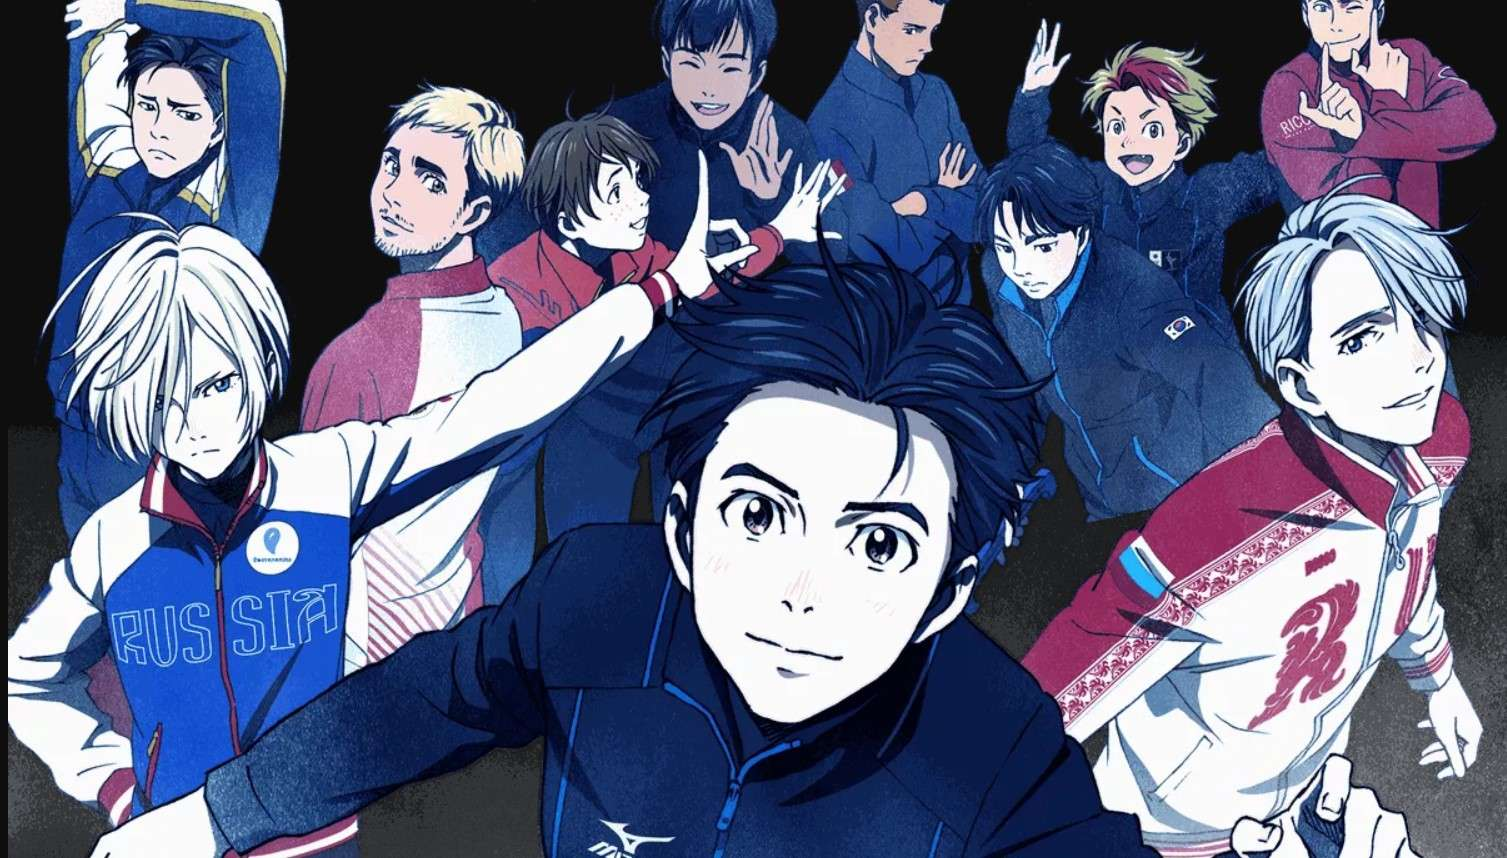 yuri on ice- best sports anime